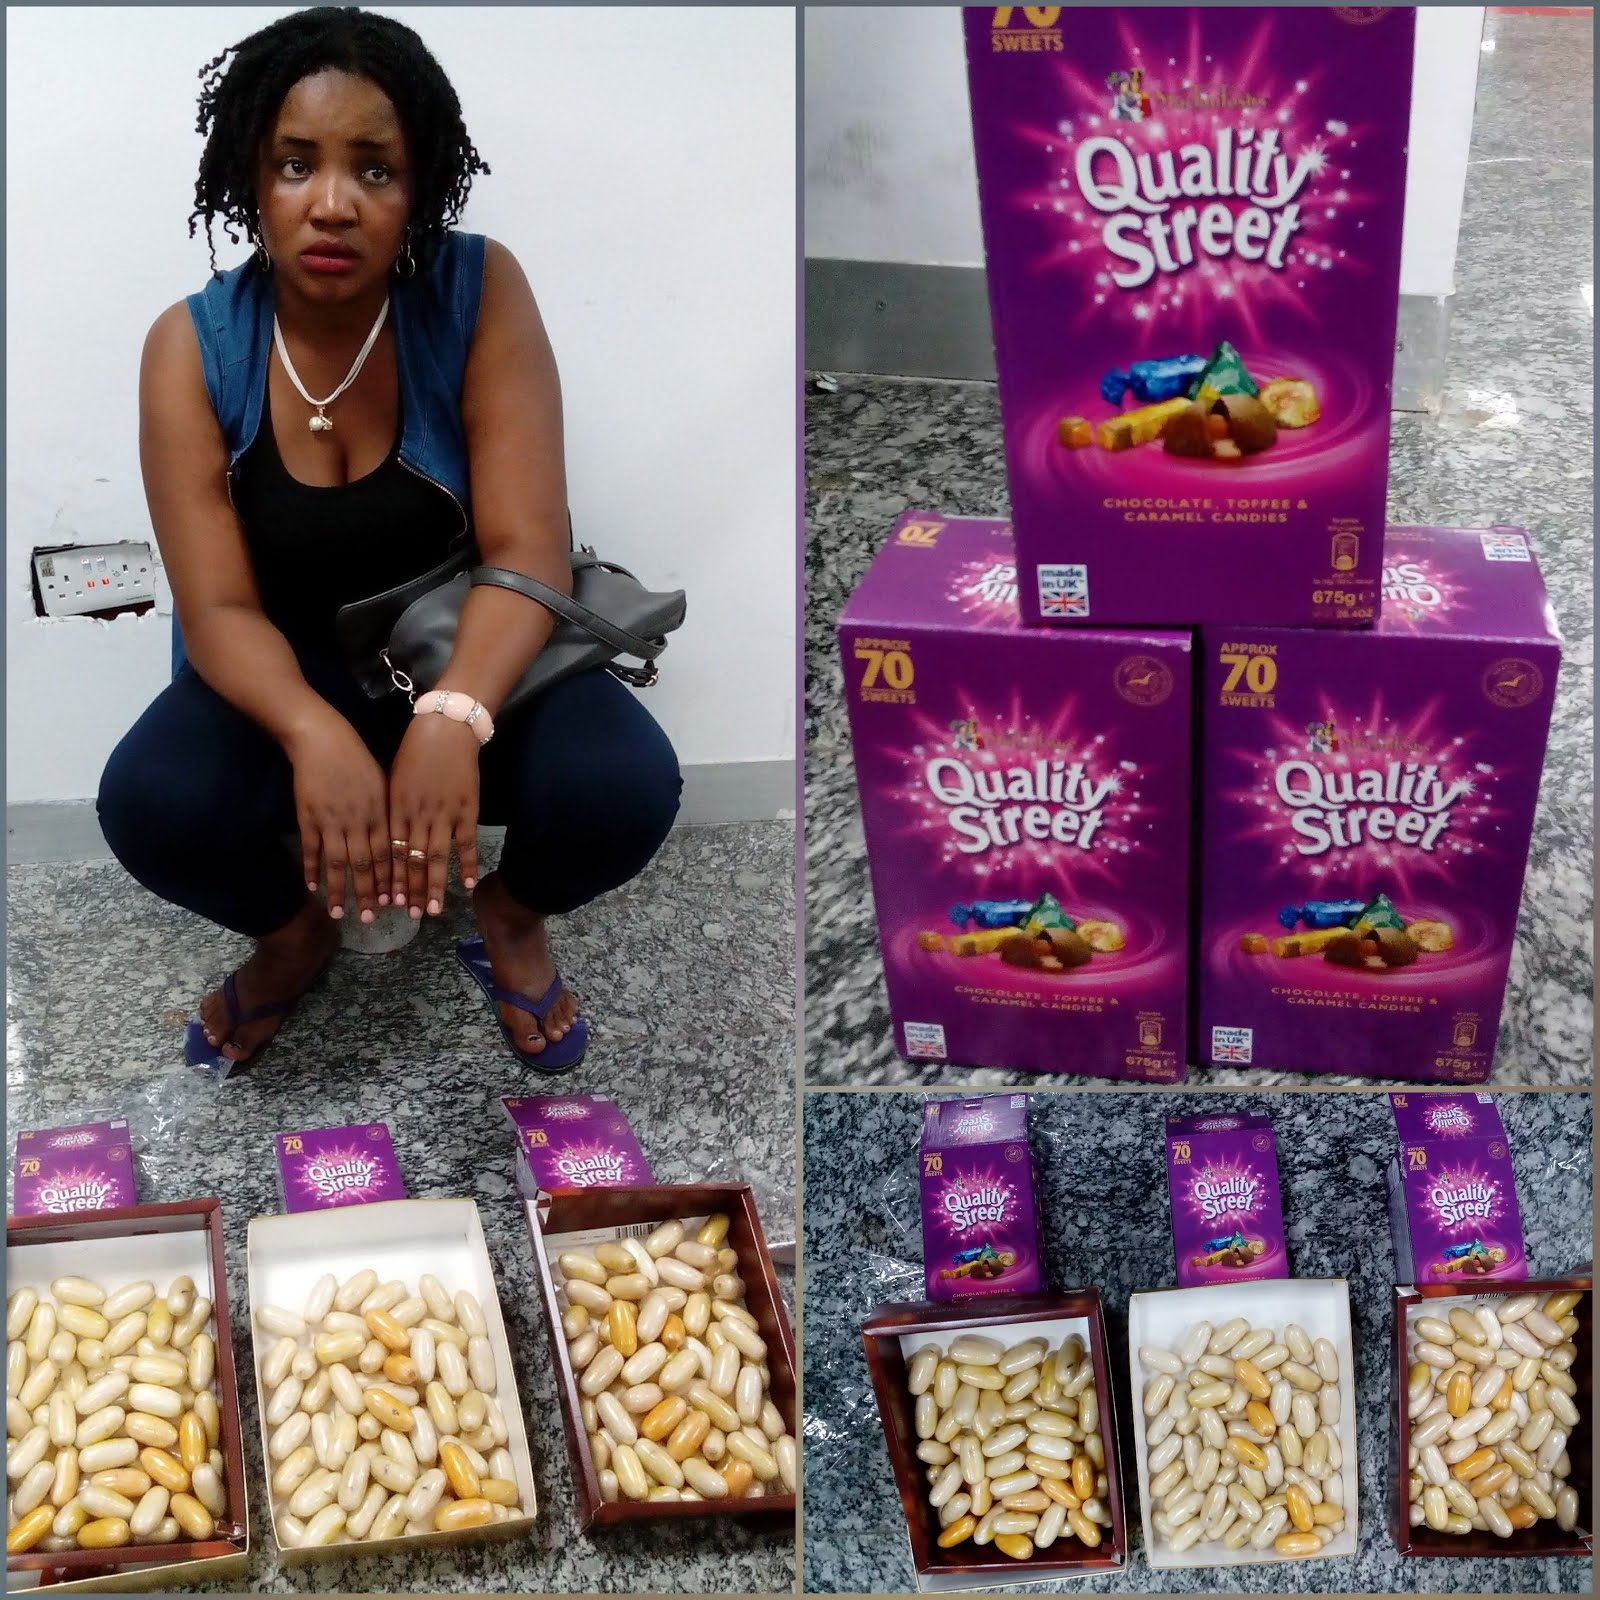 'I Was Promised N500,000' – 24 Year Old Woman Arrested With 193 Wraps Of Cocaine